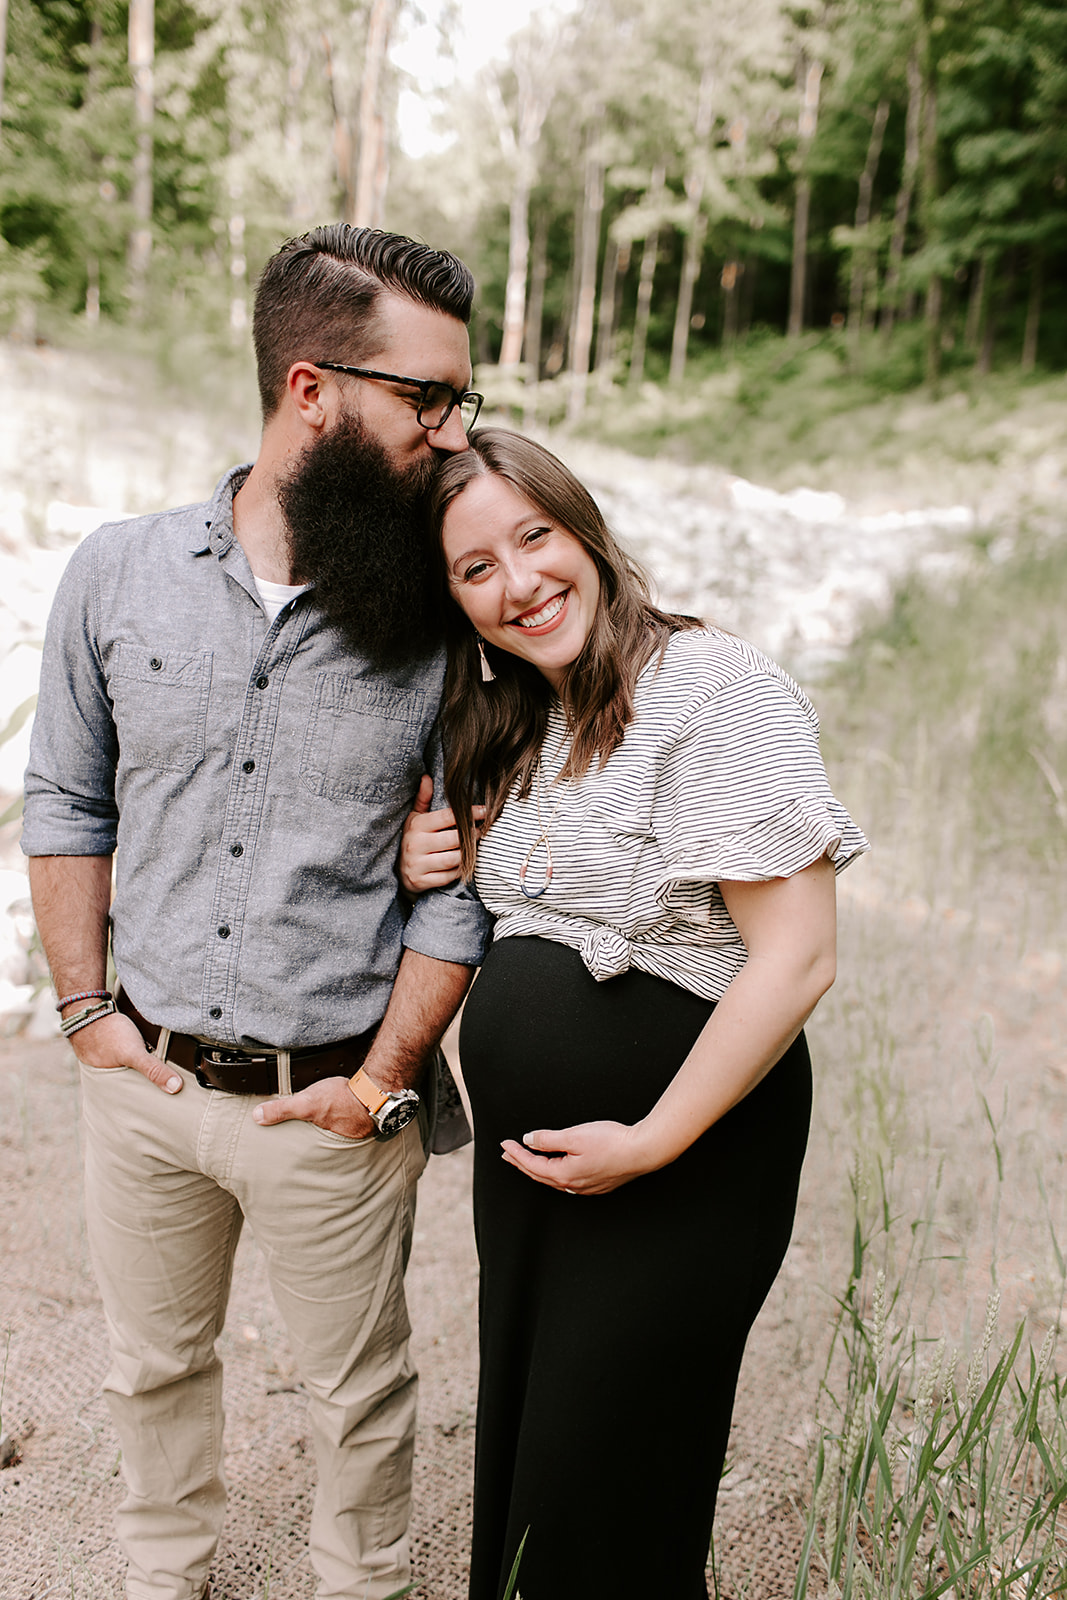 Outdoor maternity session in Indianapolis, Indiana | Photography by Emily Elyse Wehner